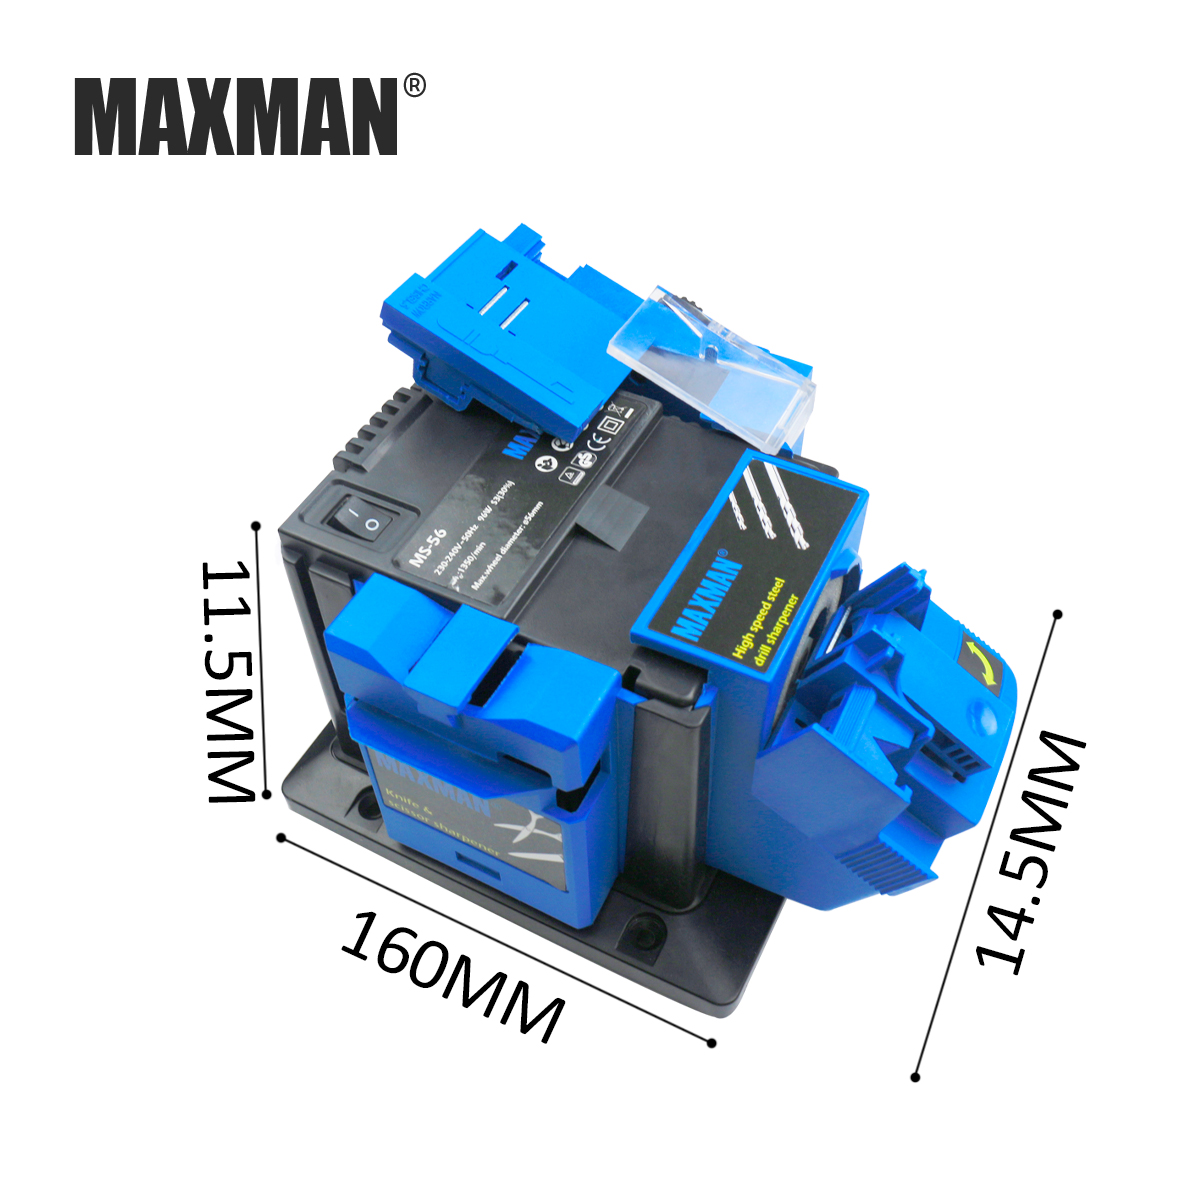 MAXMAN Professional Electric Knife Scissors Sharpener Chisel Plane Drill Sharpening Machine for Kitchen Knives Tool